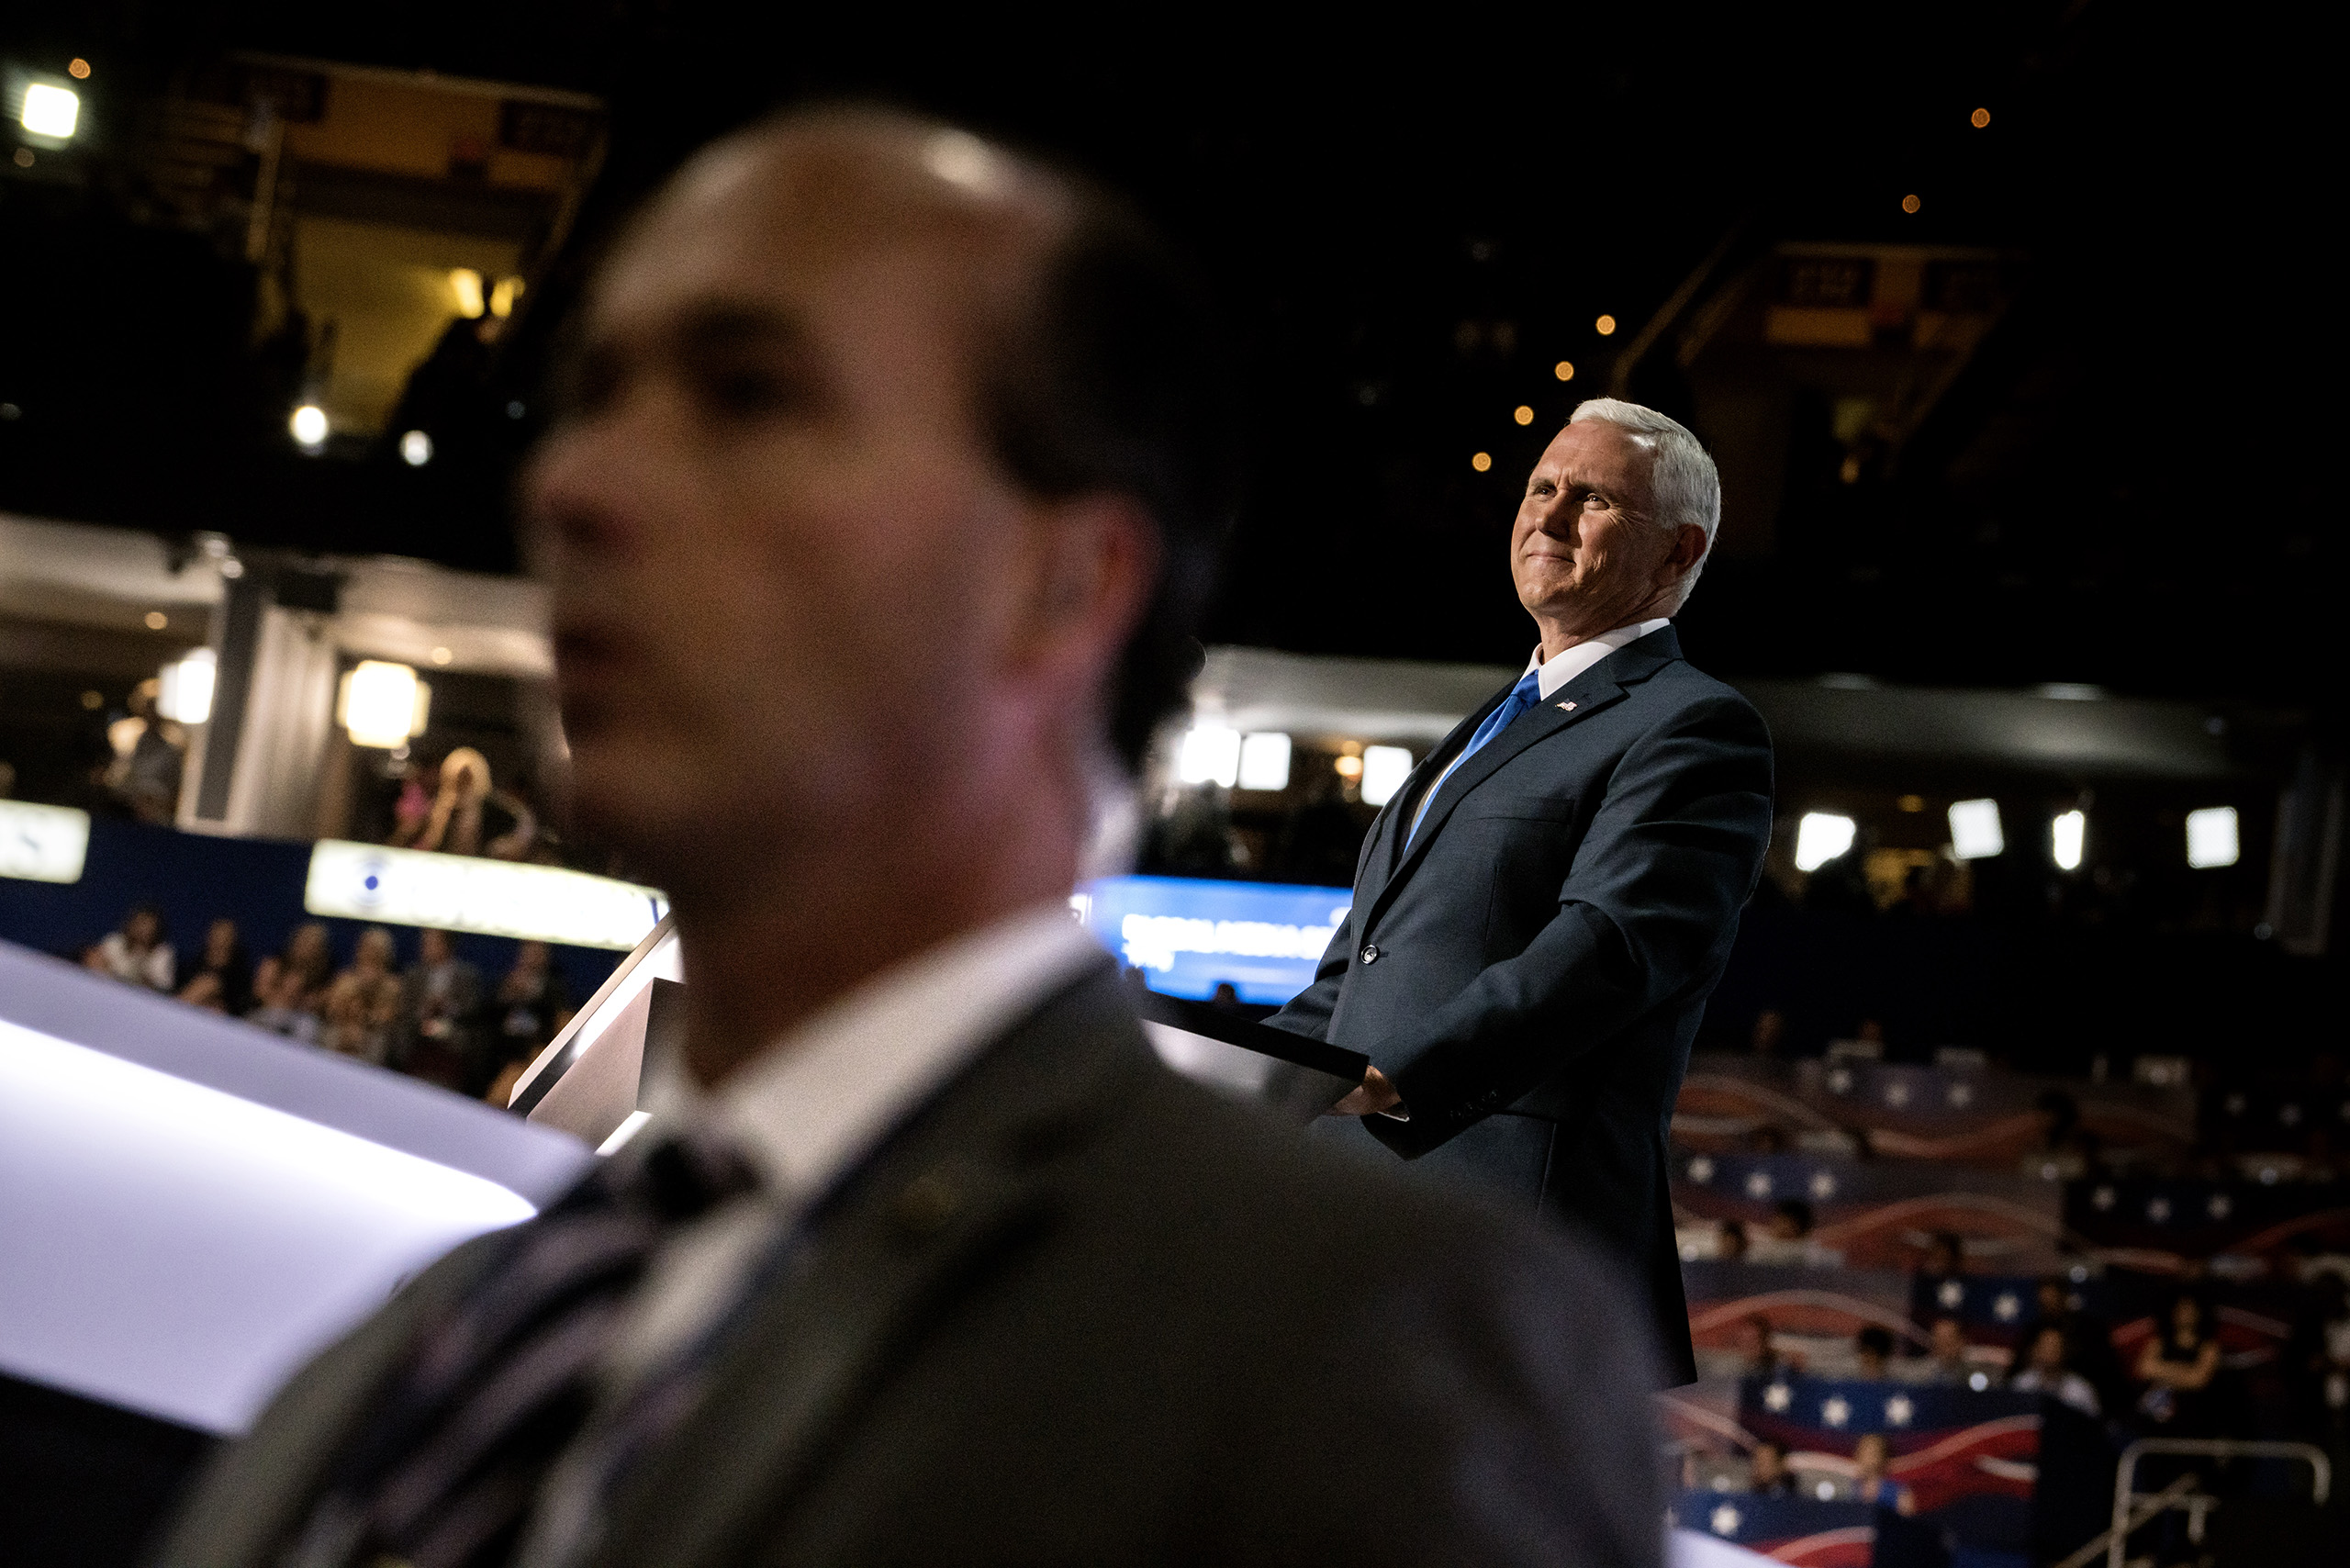 Republican Vice Presidential candidate Mike Pence delivers his speech on the third day of the Republican National Convention on July 20, 2016, at the Quicken Loans Arena in Cleveland, Ohio.